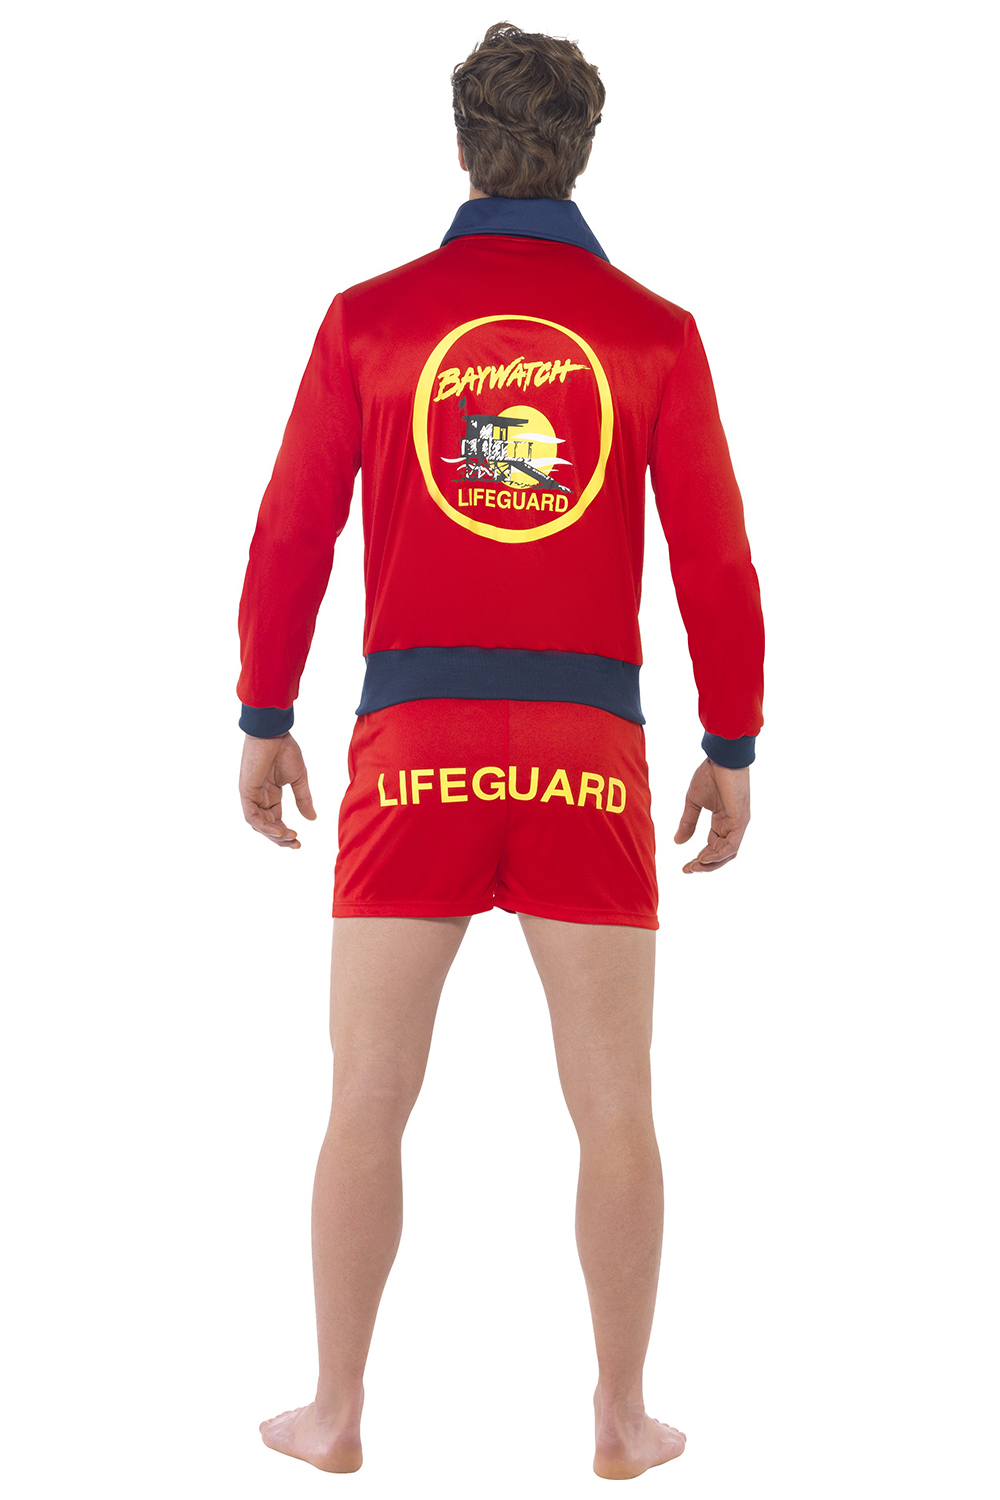 smiffys adults official licensed baywatch lifeguard or float fancy dress costume ebay. Black Bedroom Furniture Sets. Home Design Ideas